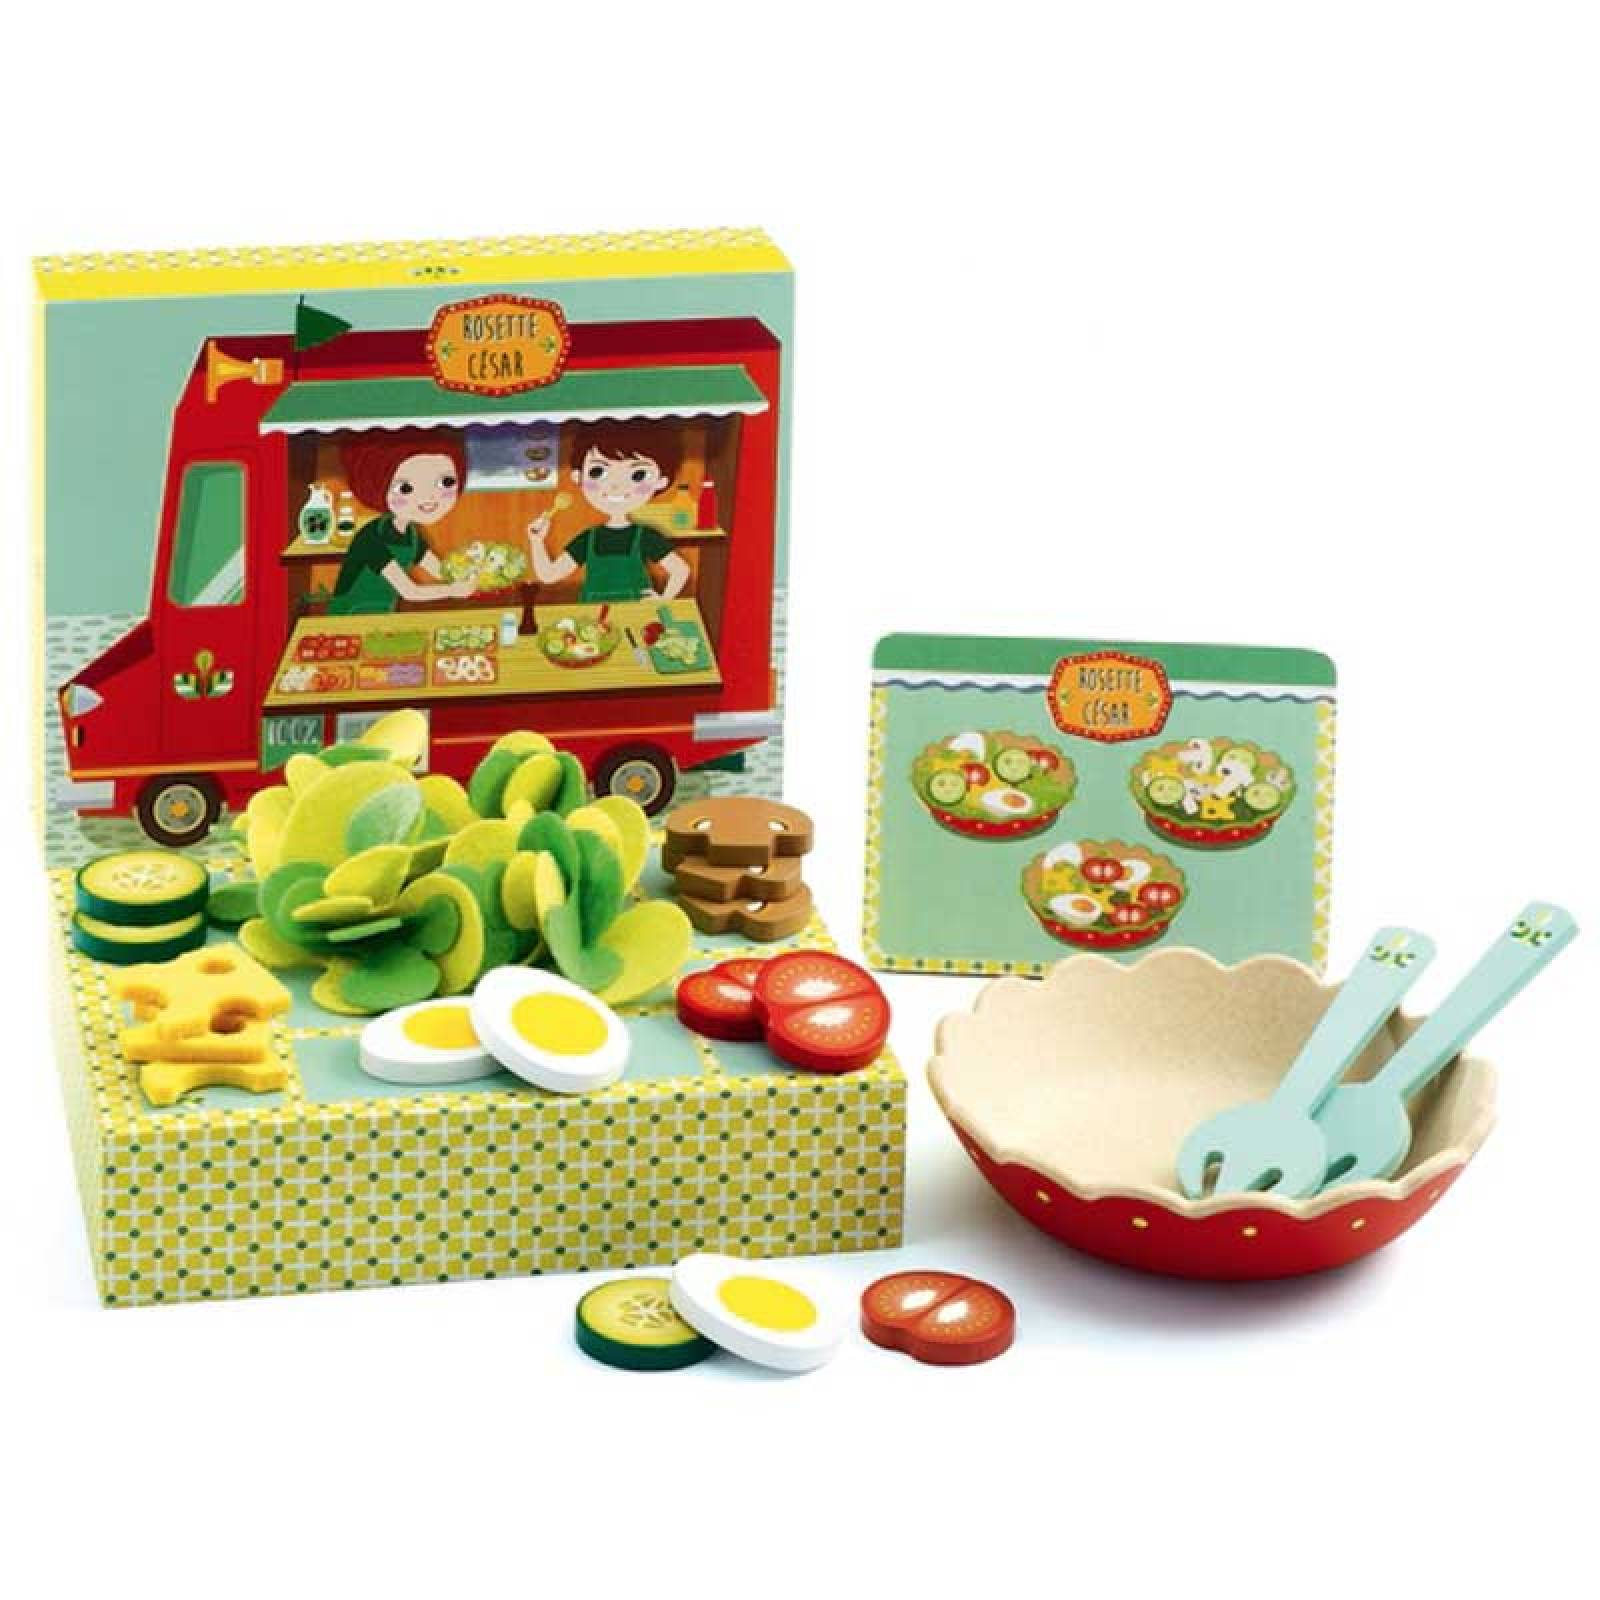 Salad Set Rosette & Cesar By Djeco